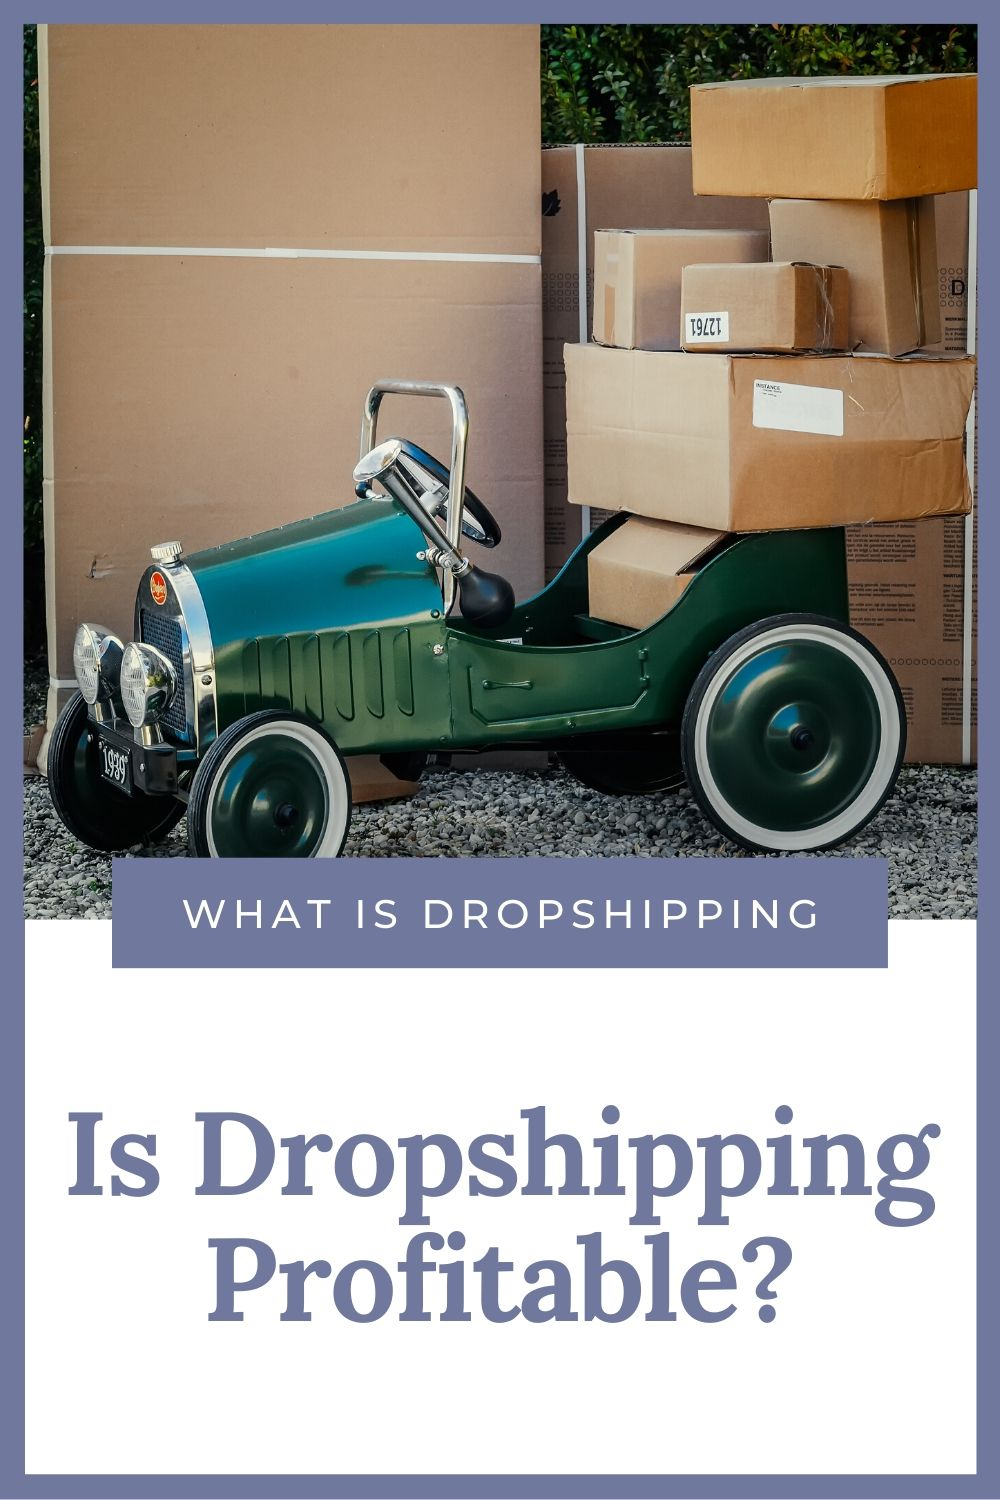 Is Dropshipping Profitable